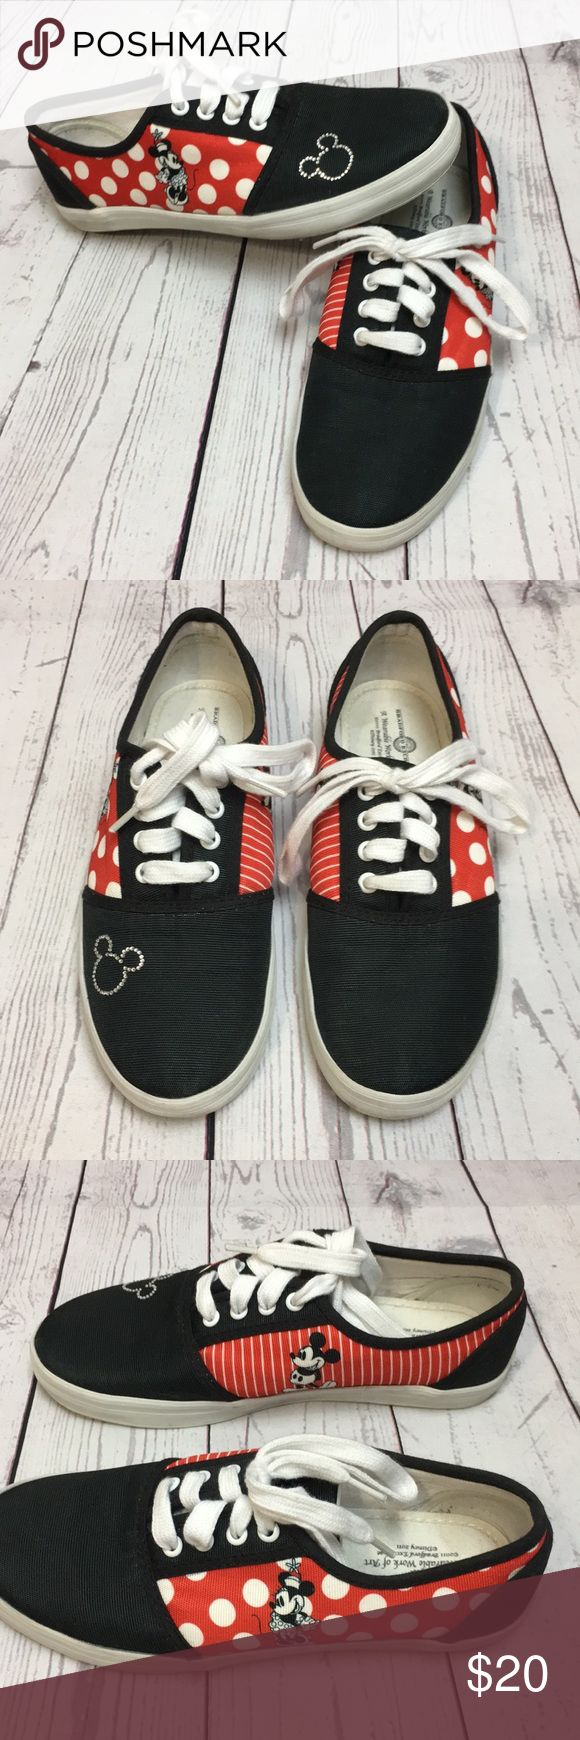 "Bradford Exchange Disney Mickey & Minnie Sneakers These Mickey and Minnie shoes are in good pre-owned condition. They have little signs of wear mostly on the soles. Thank you Goodwill for marking them with a big""C"" on the soles😒  Women's size 5.5 Comes from a smoke free home Any questions please don't hesitate to ask. Bradford Exchange Shoes Sneakers"